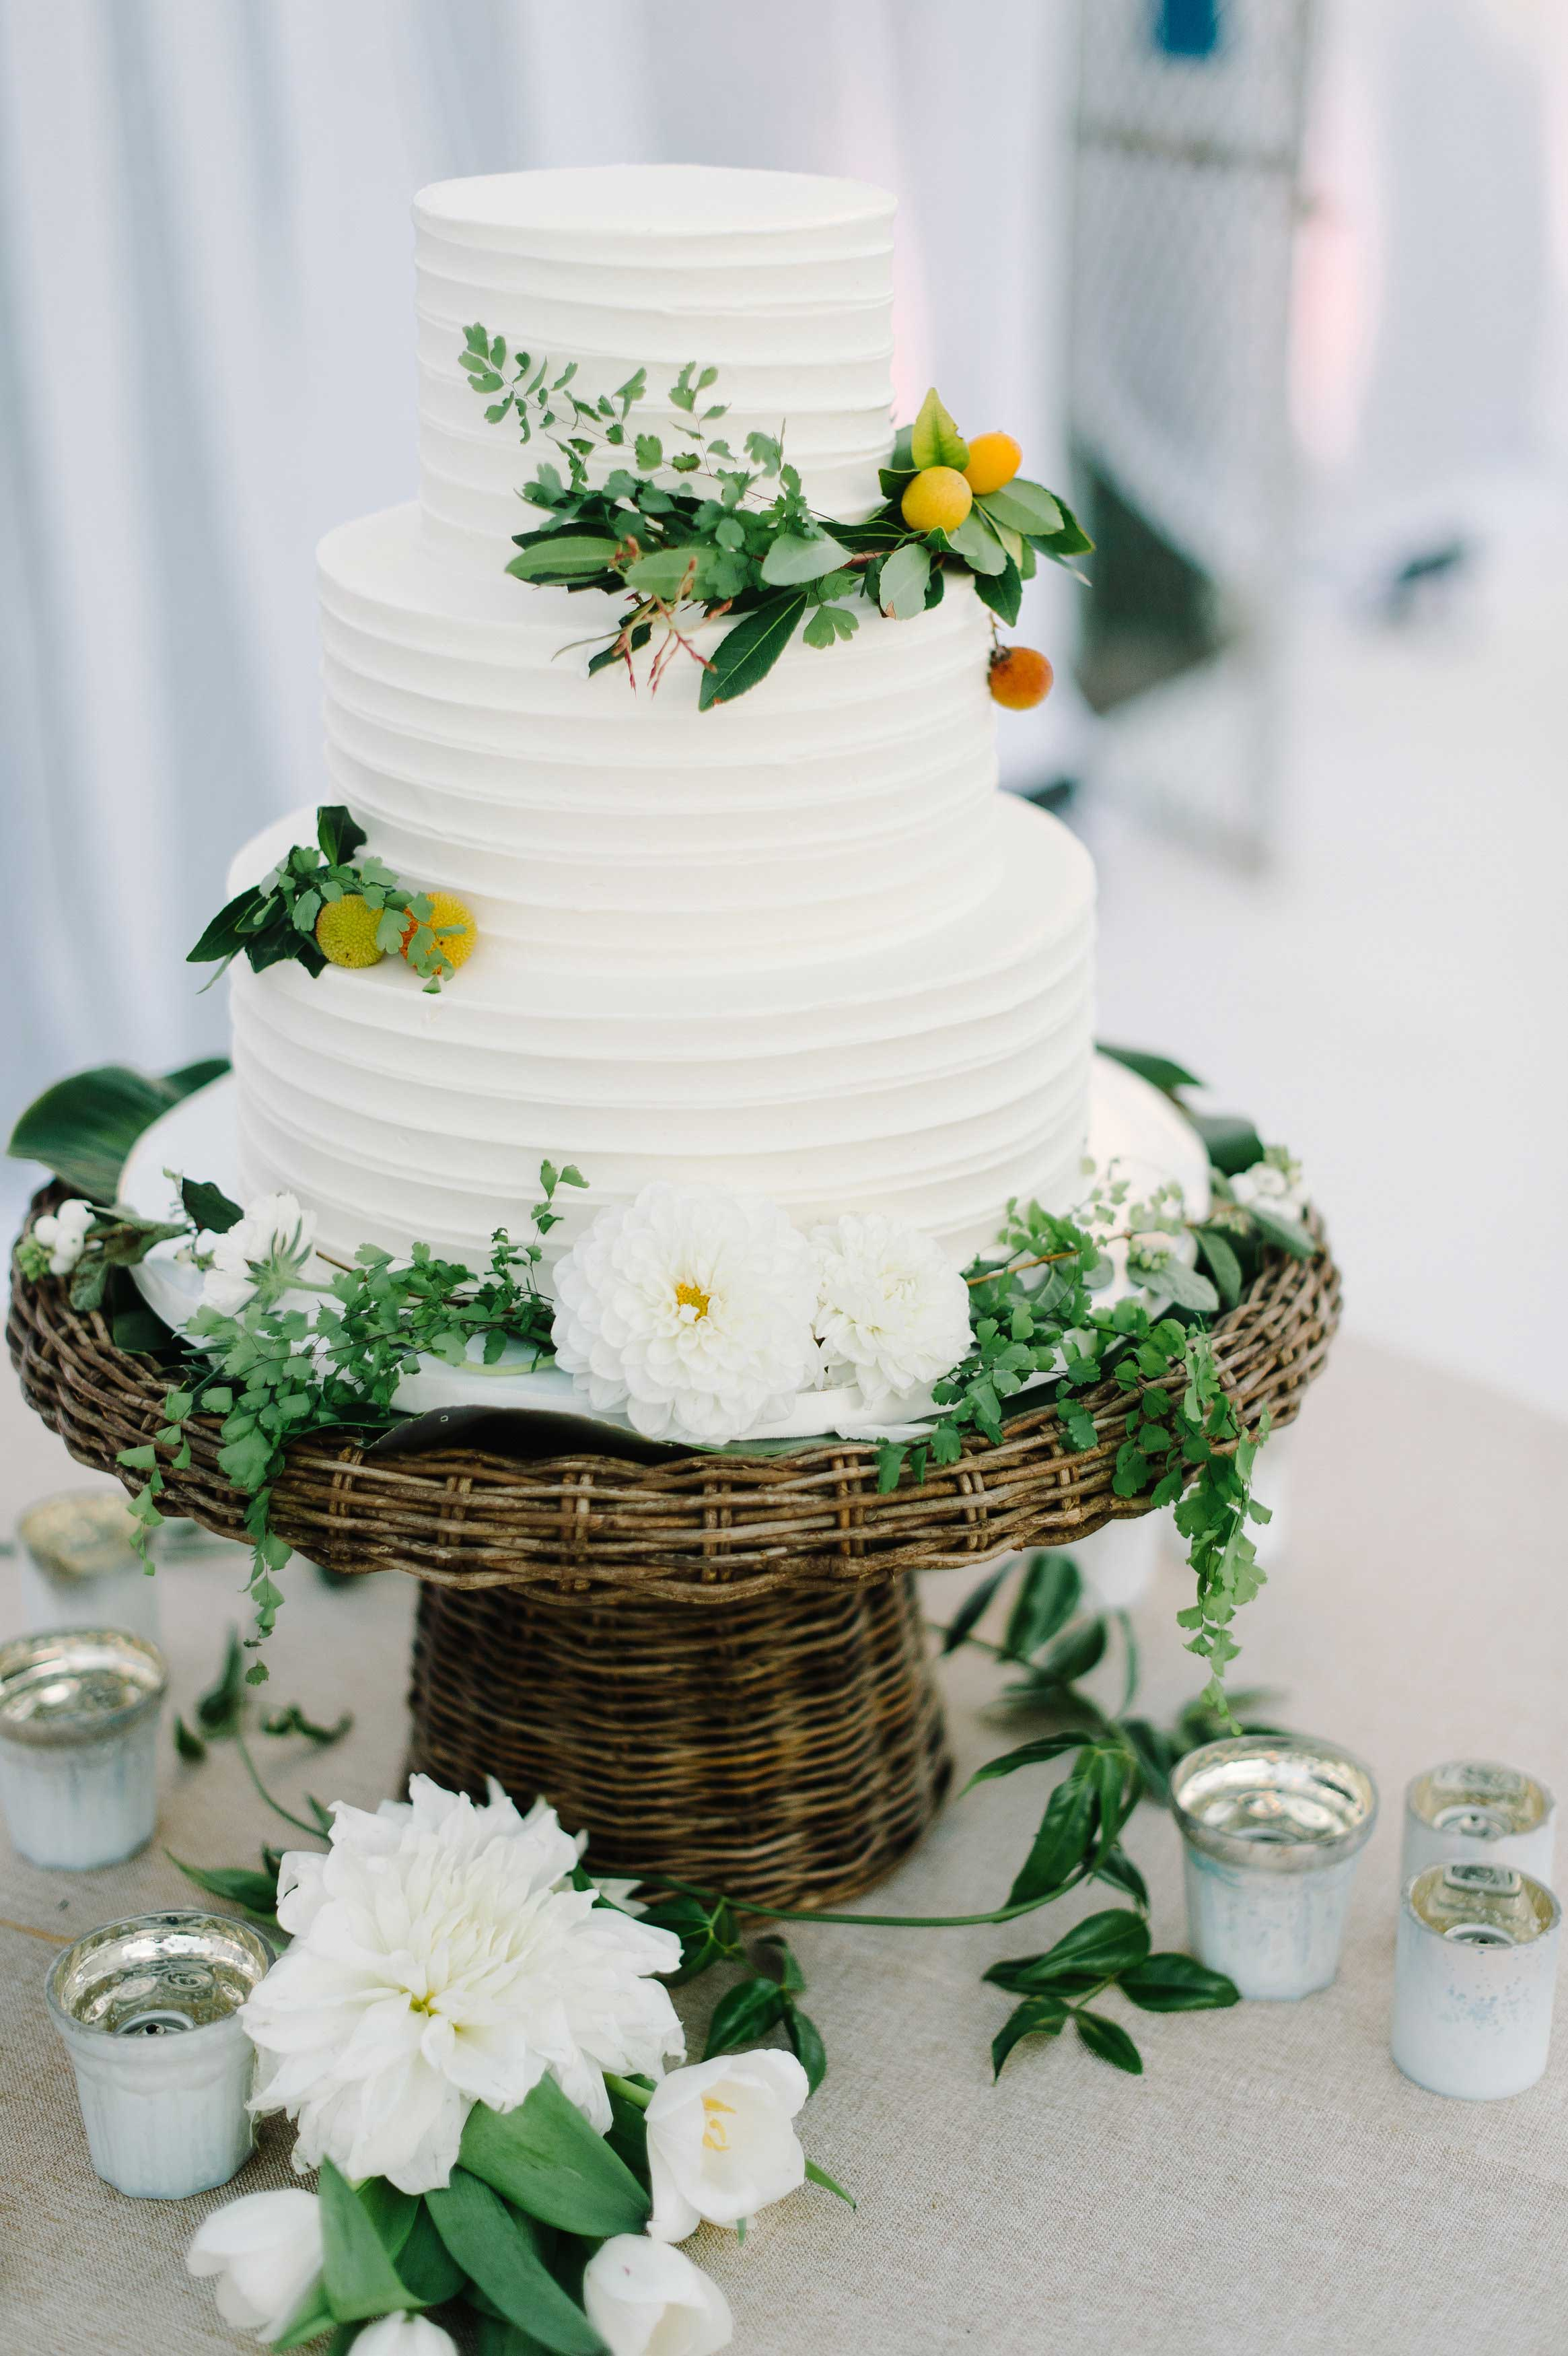 wedding cake white simple with fresh flowers and fruits on wicker stand